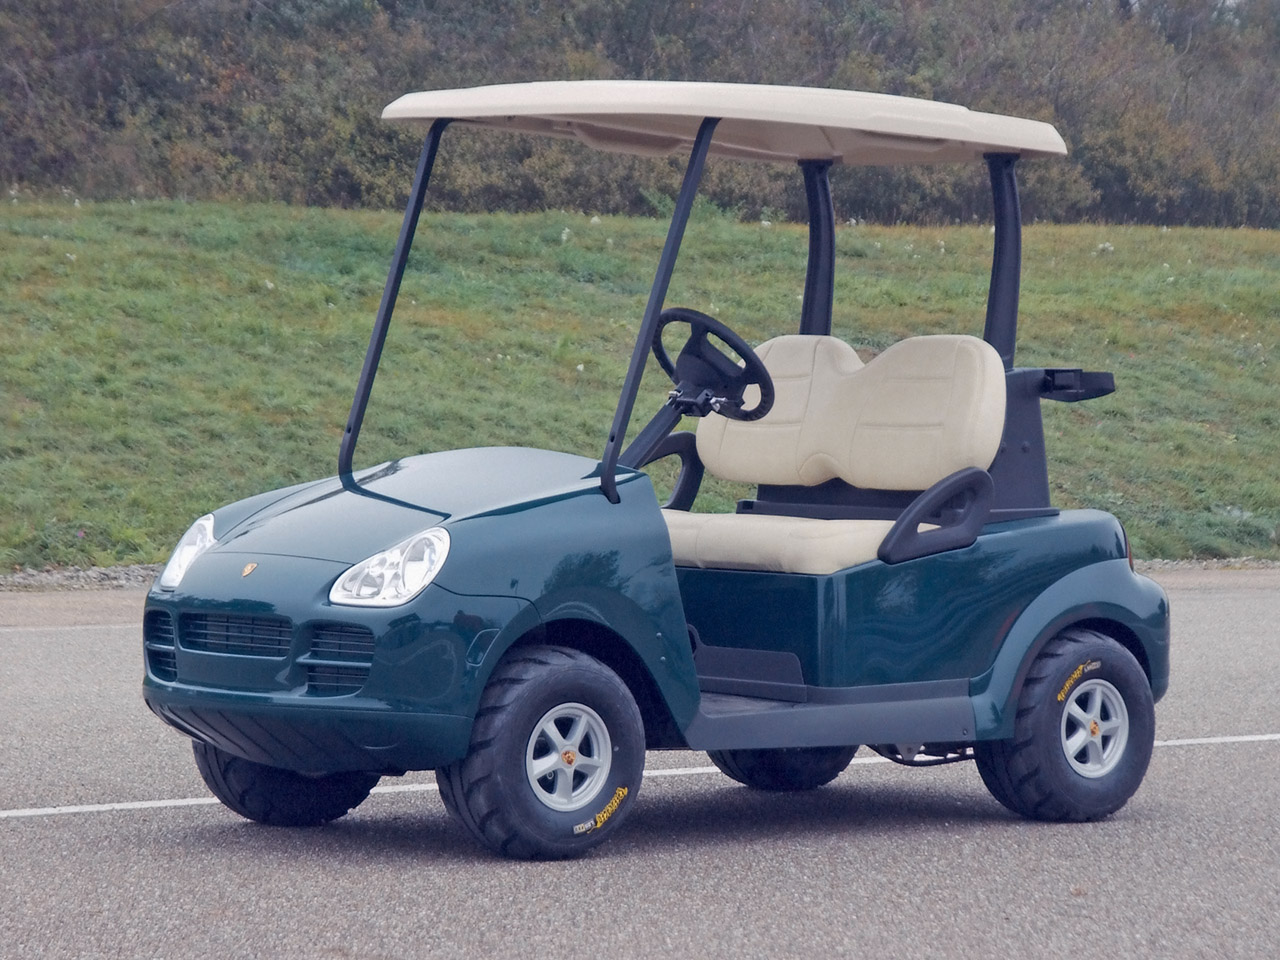 Rolls Royce Golf Cart >> Top 6 Customised Golf Carts - GolfPunkHQ